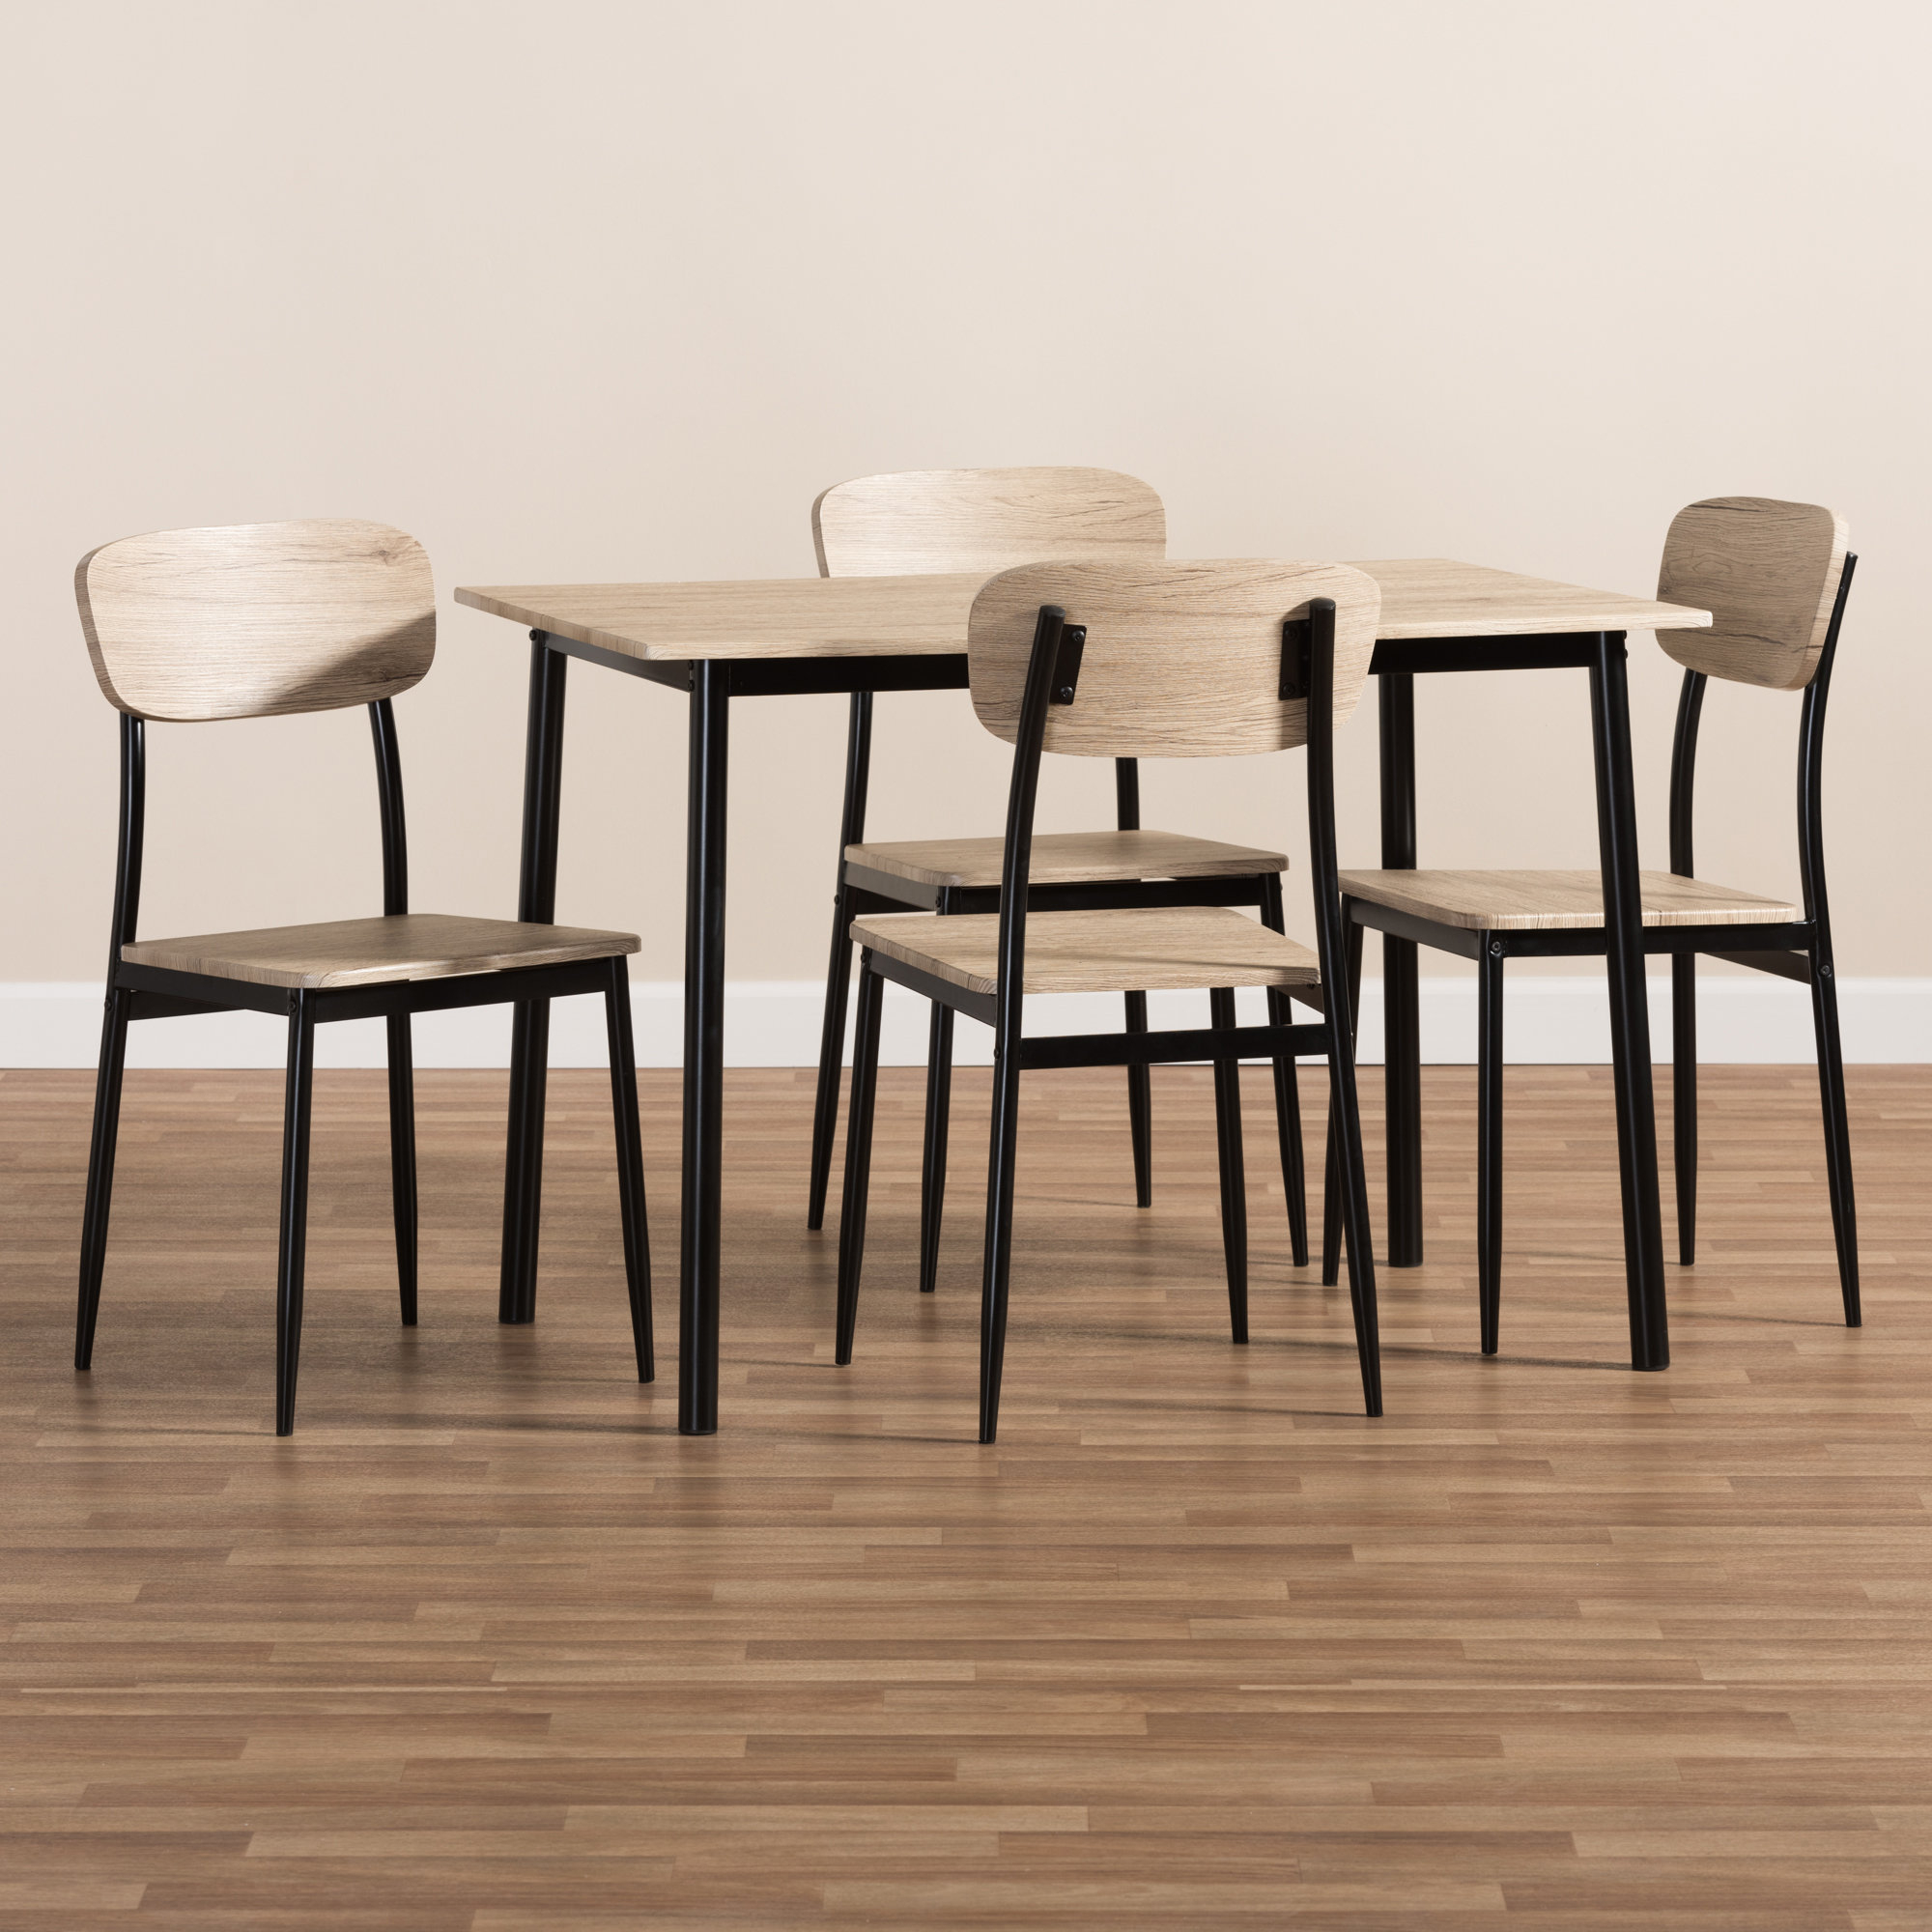 Joss & Main For Popular Wiggs 5 Piece Dining Sets (View 3 of 25)